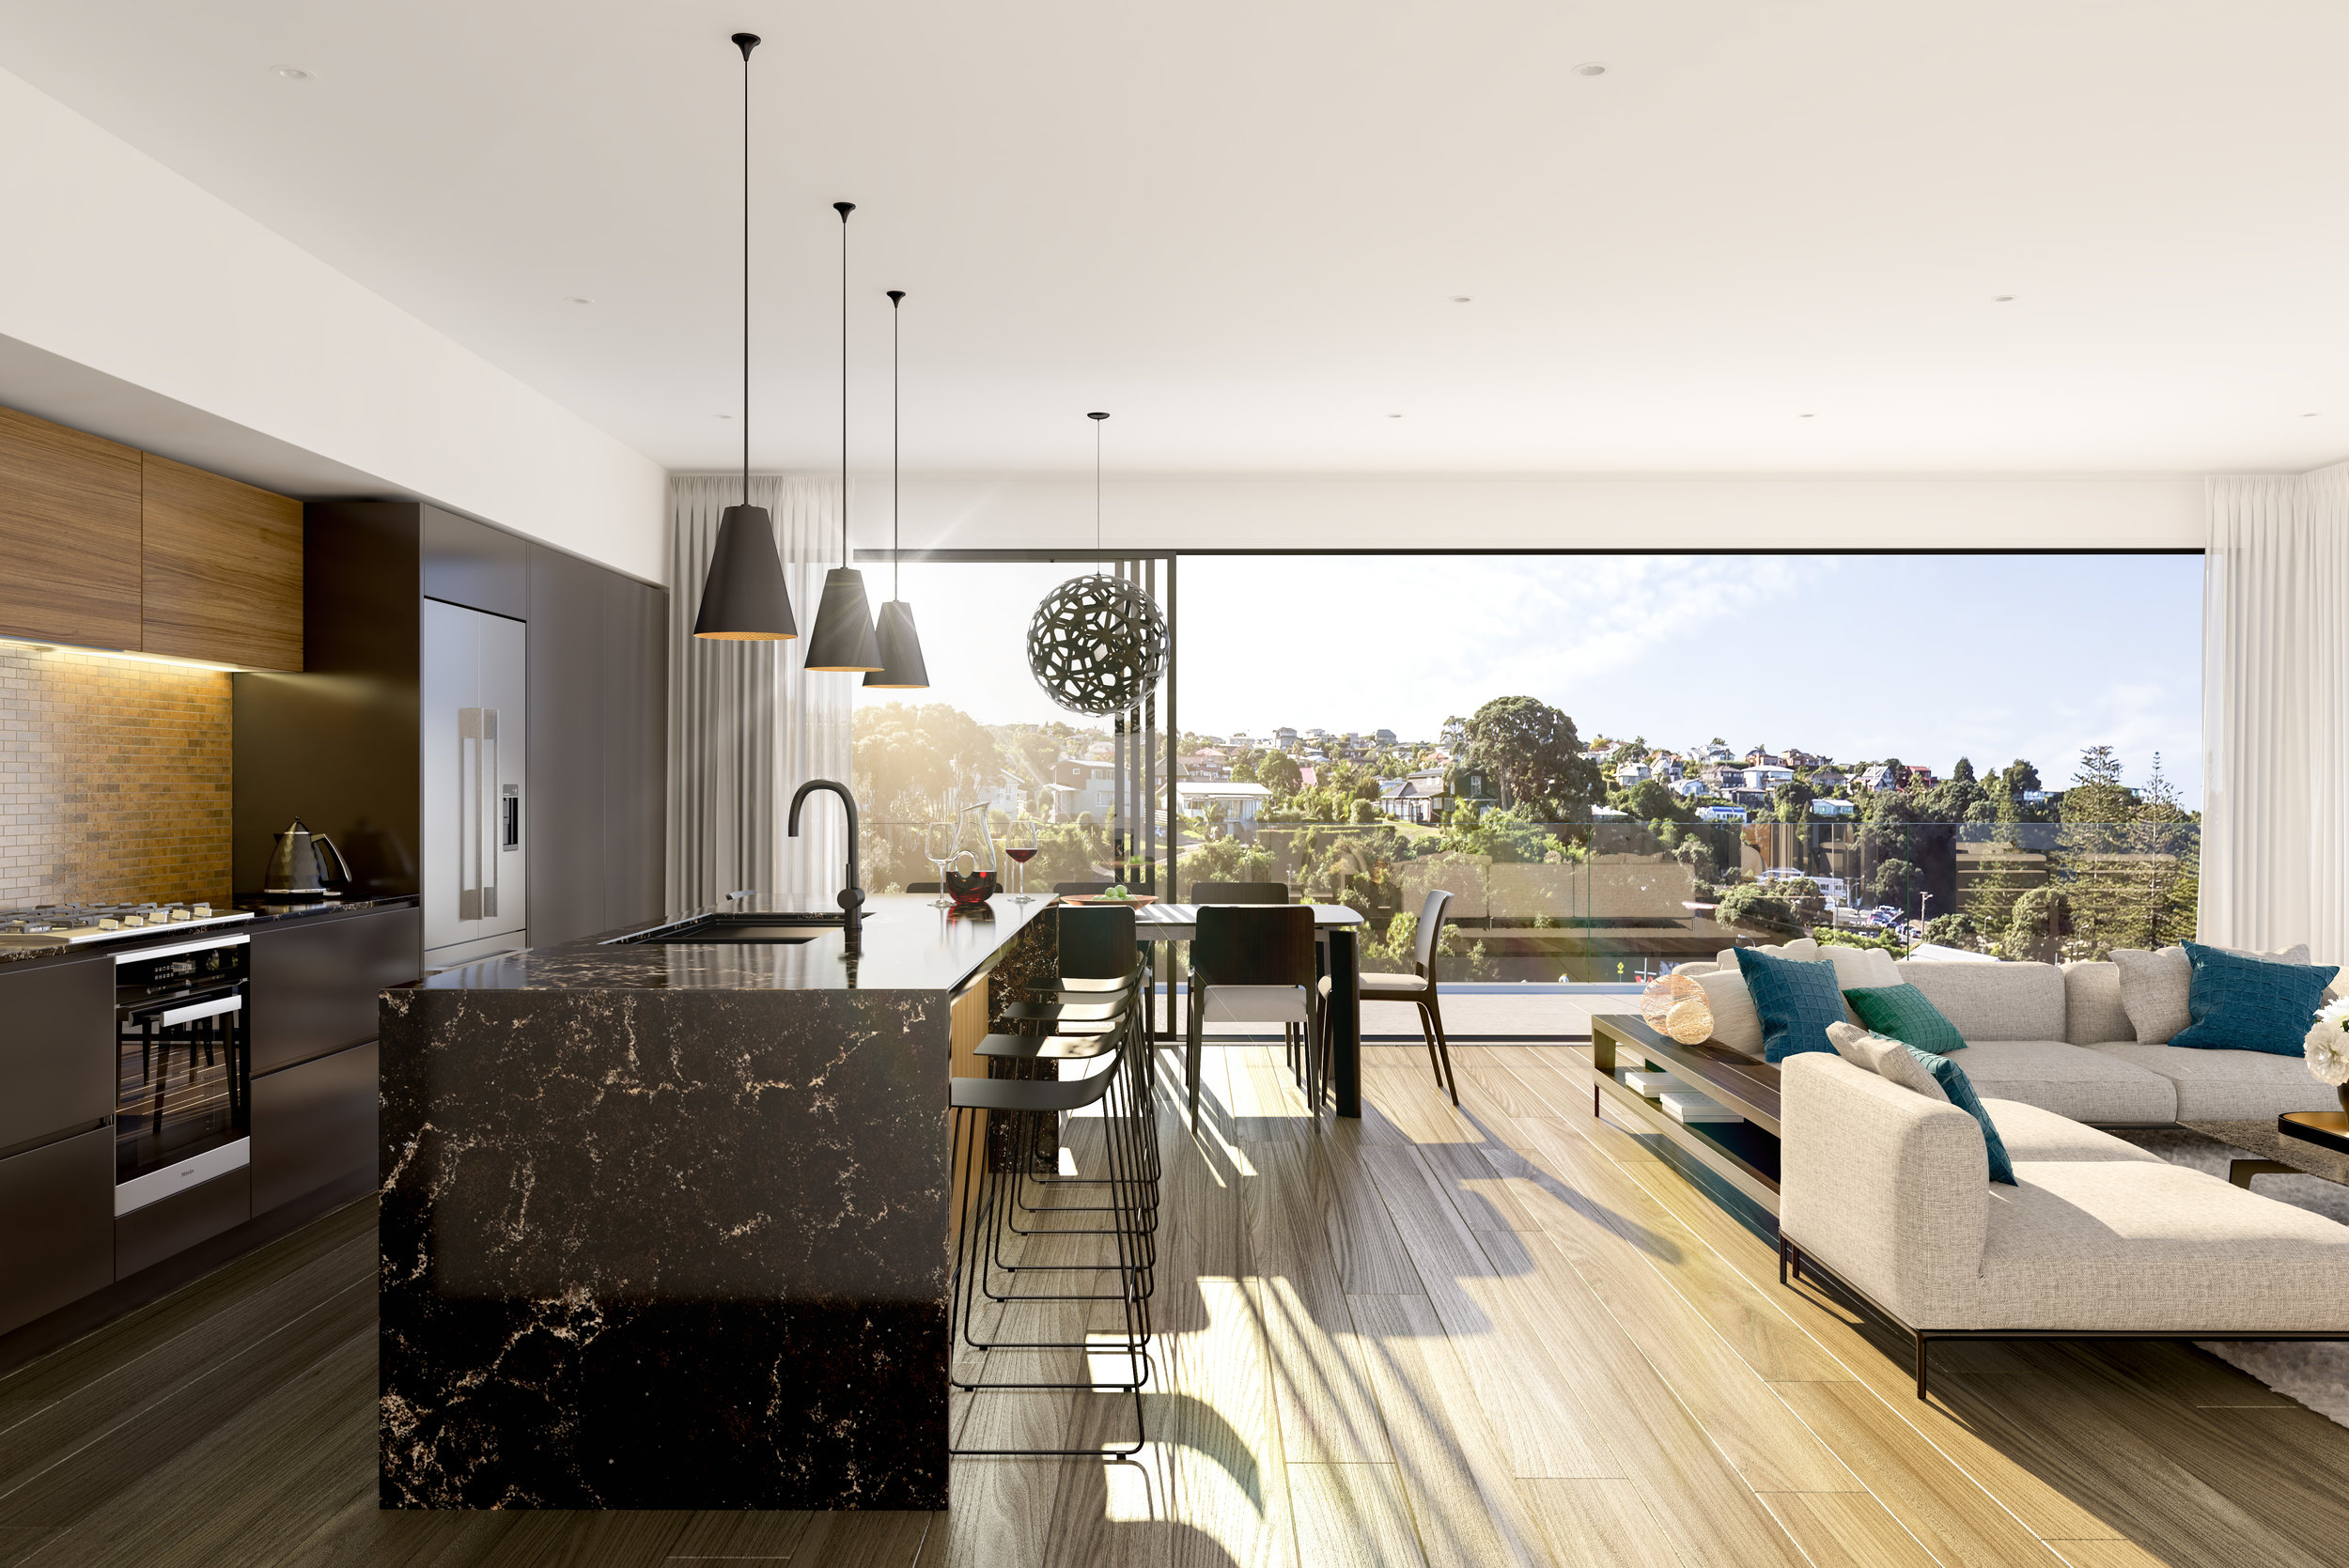 TheVictorBbay_Int_Penthouse_Kitchen_Final_01.jpg